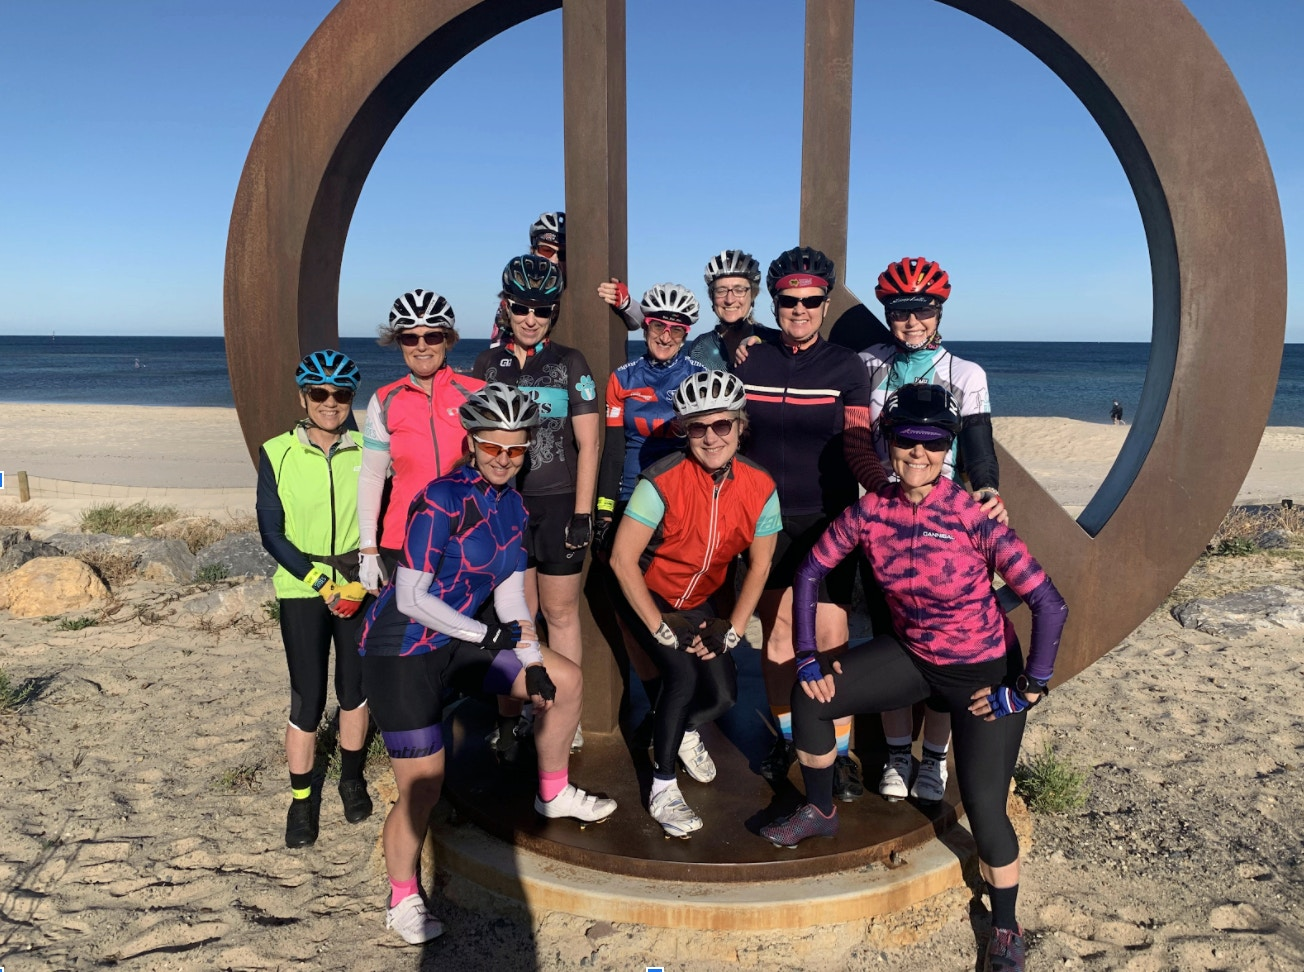 Margaret's mission to get more women riding